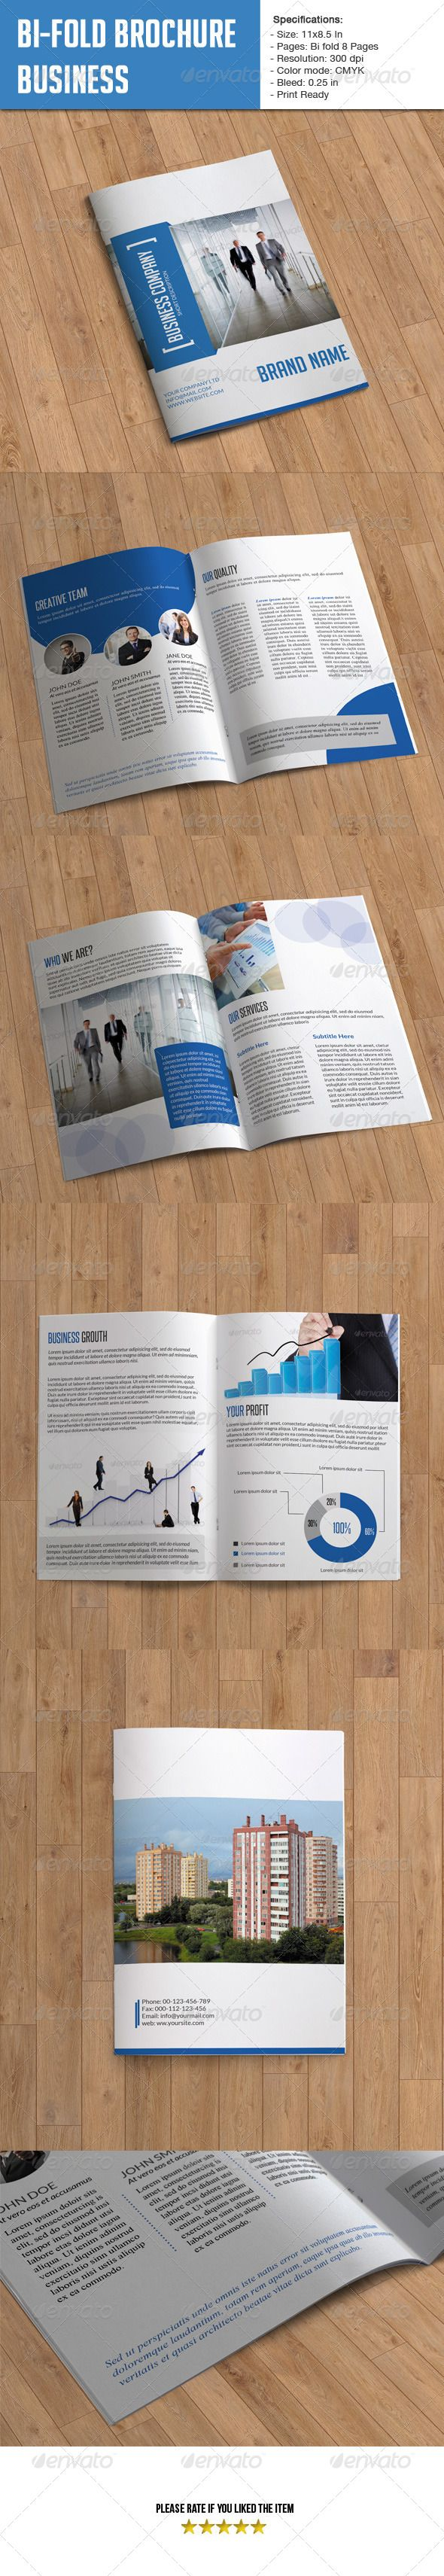 Bifold Brochure for Business 8 Pages The